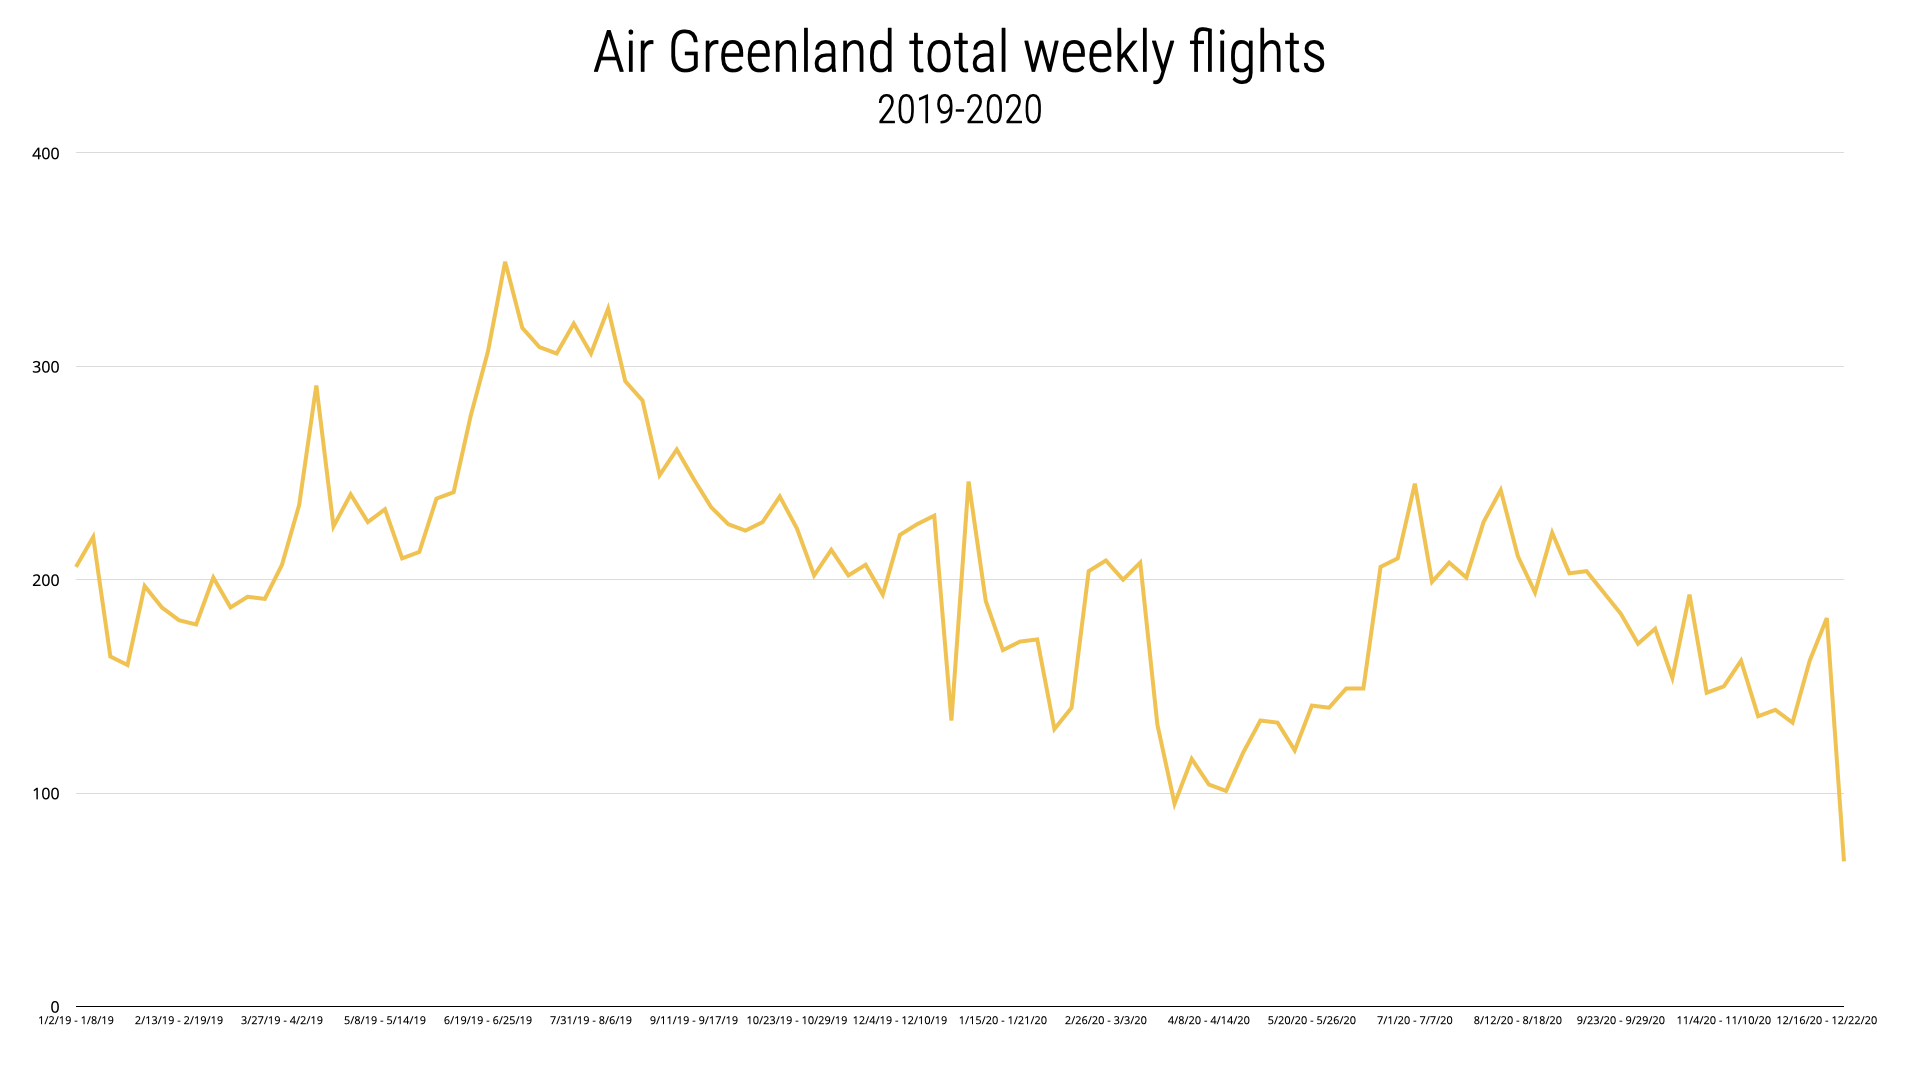 Air greenland operations through the pandemic